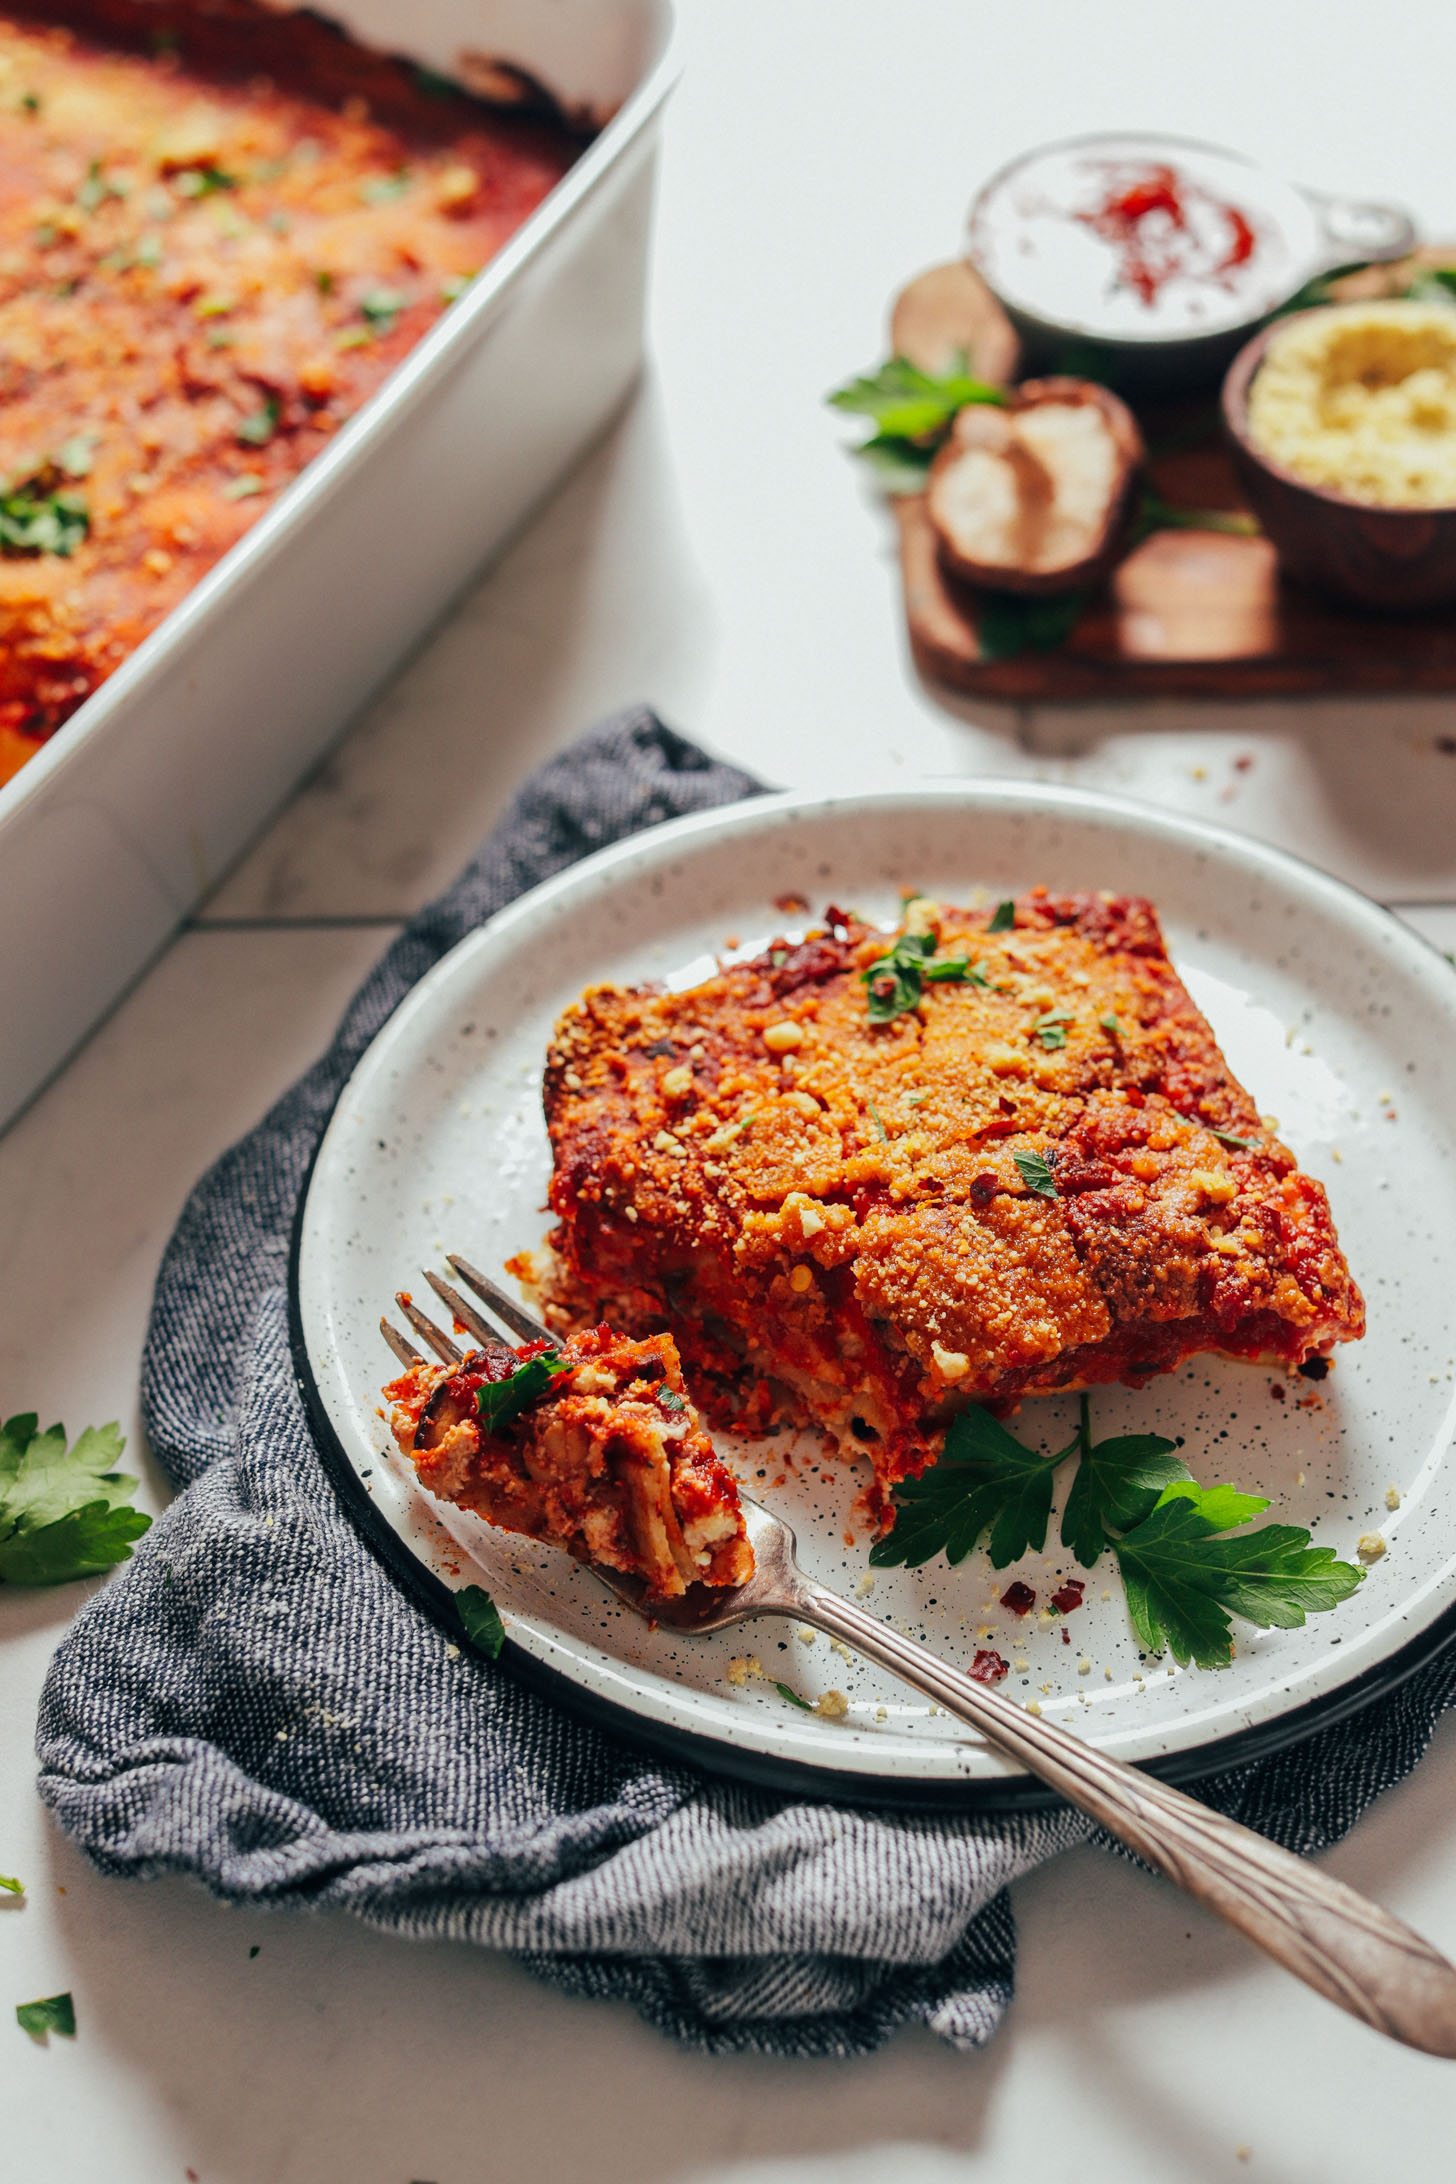 Using a fork to grab a bite of our flavorful Vegan Lasagna recipe